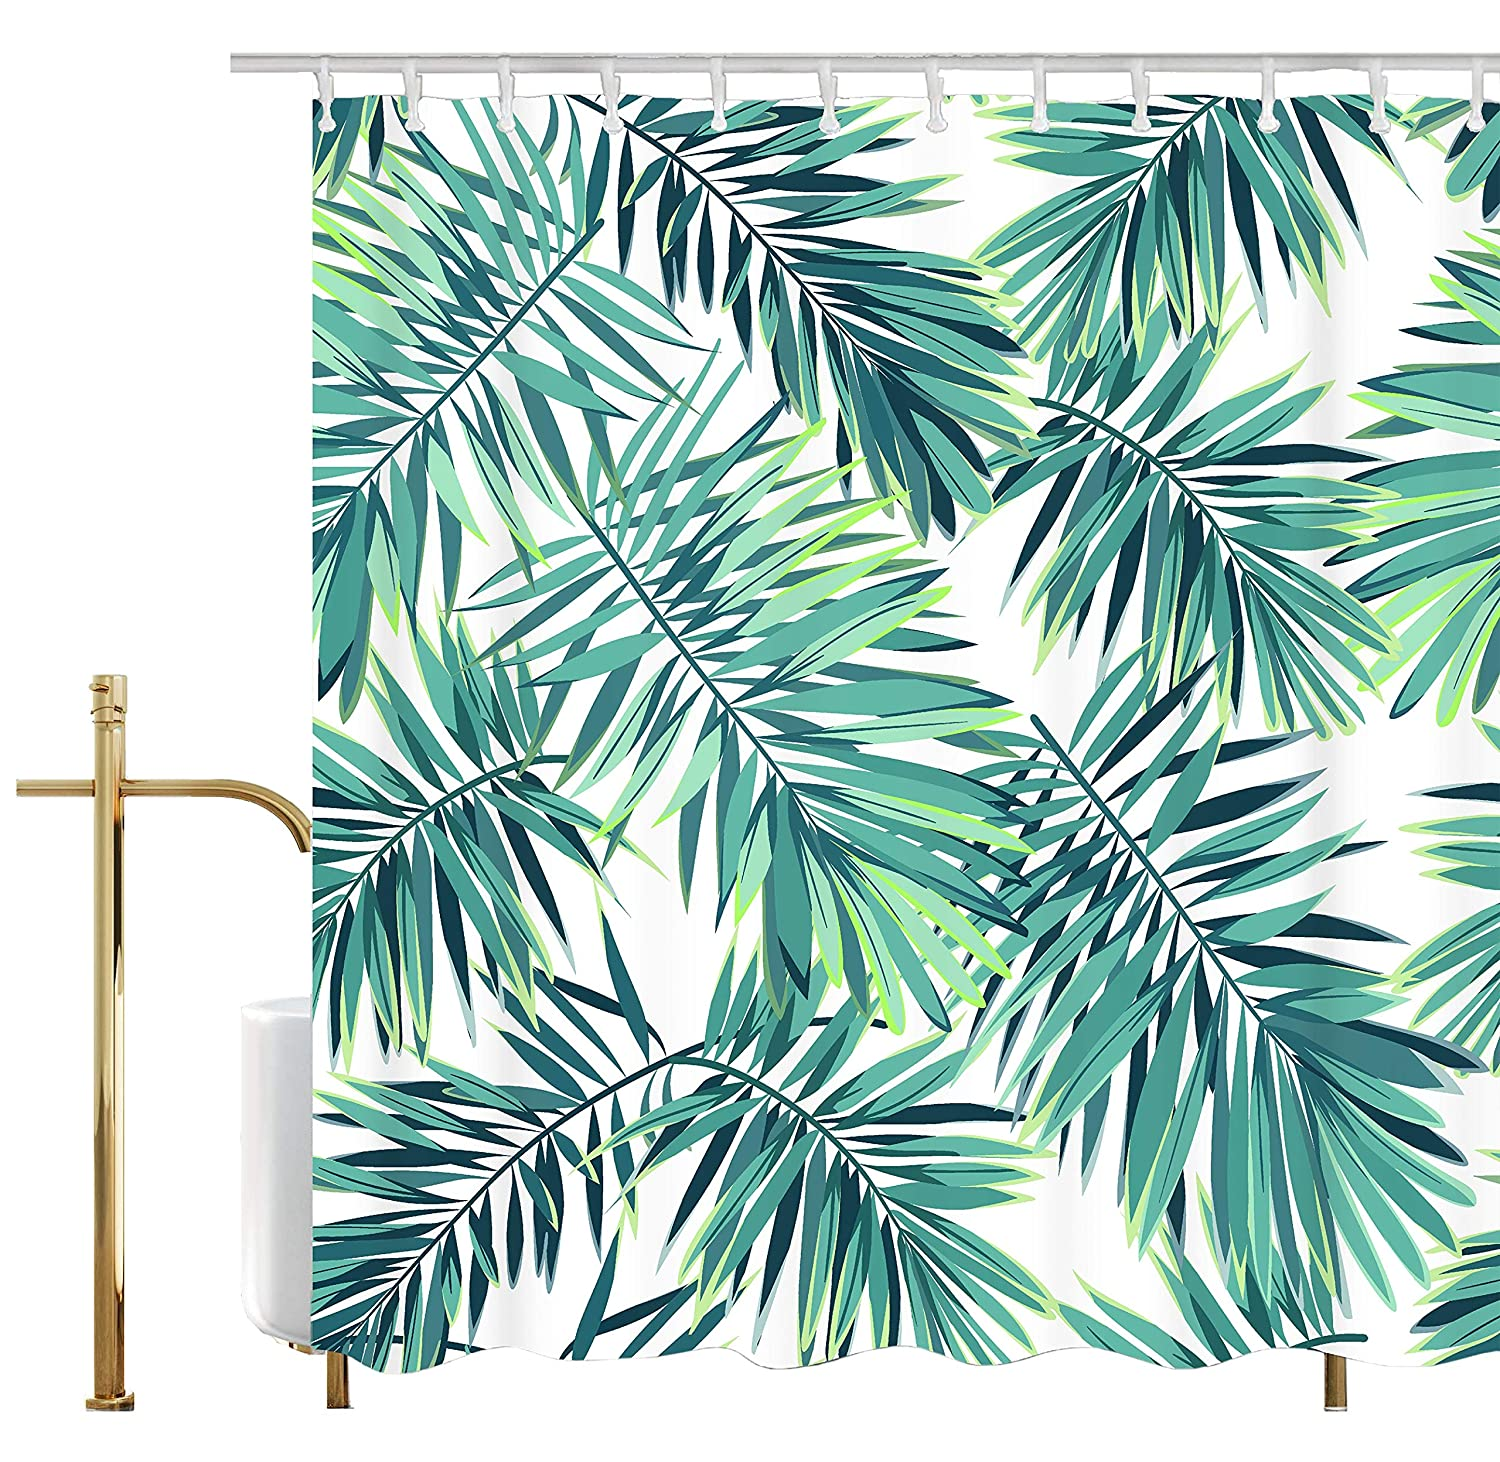 Ao blare Leaf Shower Curtain Green White Tropical Plants Decor Palm Leaves Mildew Resistant Polyester Fabric Shower Curtain 72X72 Inch